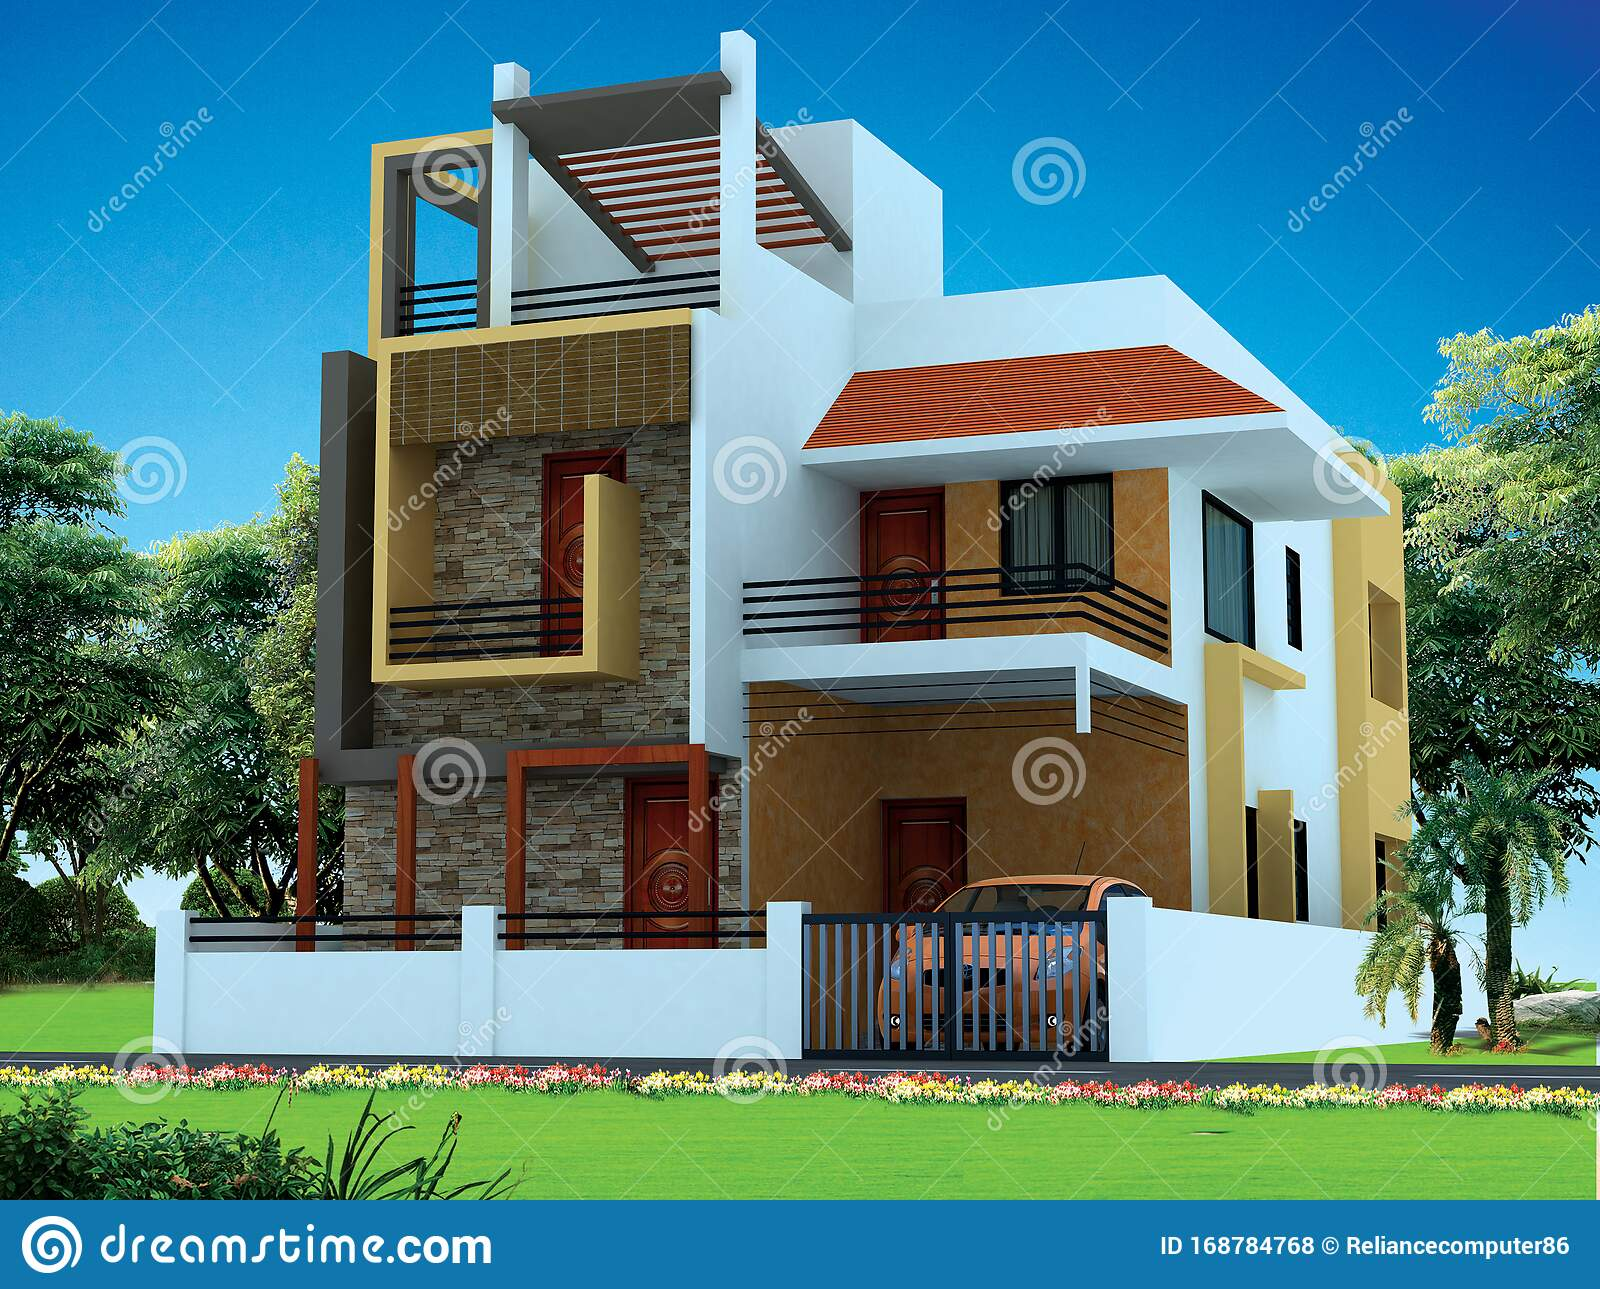 Incredible House Design Ideas Images Best House Design Images Latest House Images Design Stock Illustration Illustration Of 2021 View 168784768